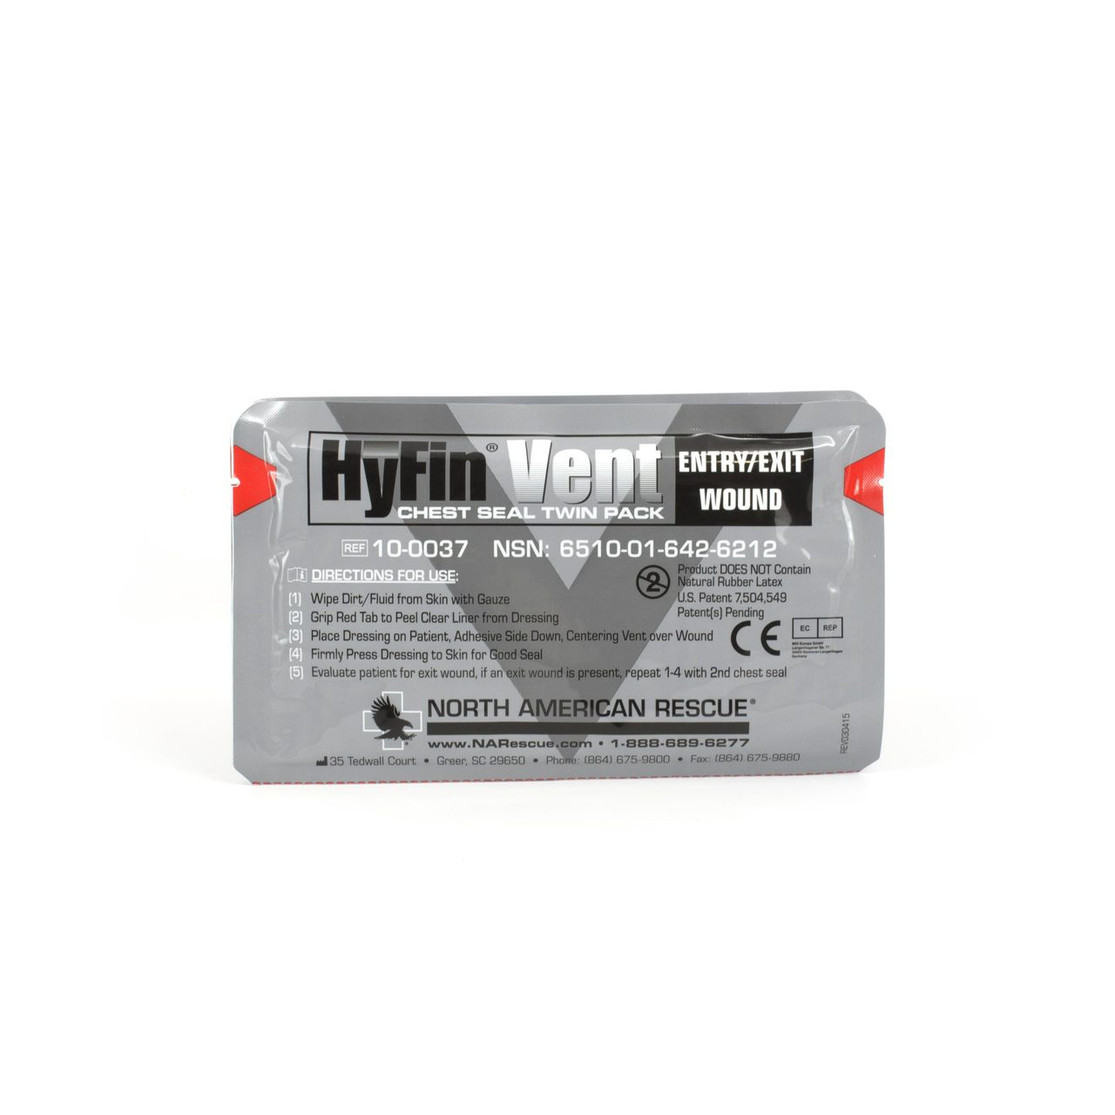 North American Rescue Hyfin Chest Seal Twin Pack